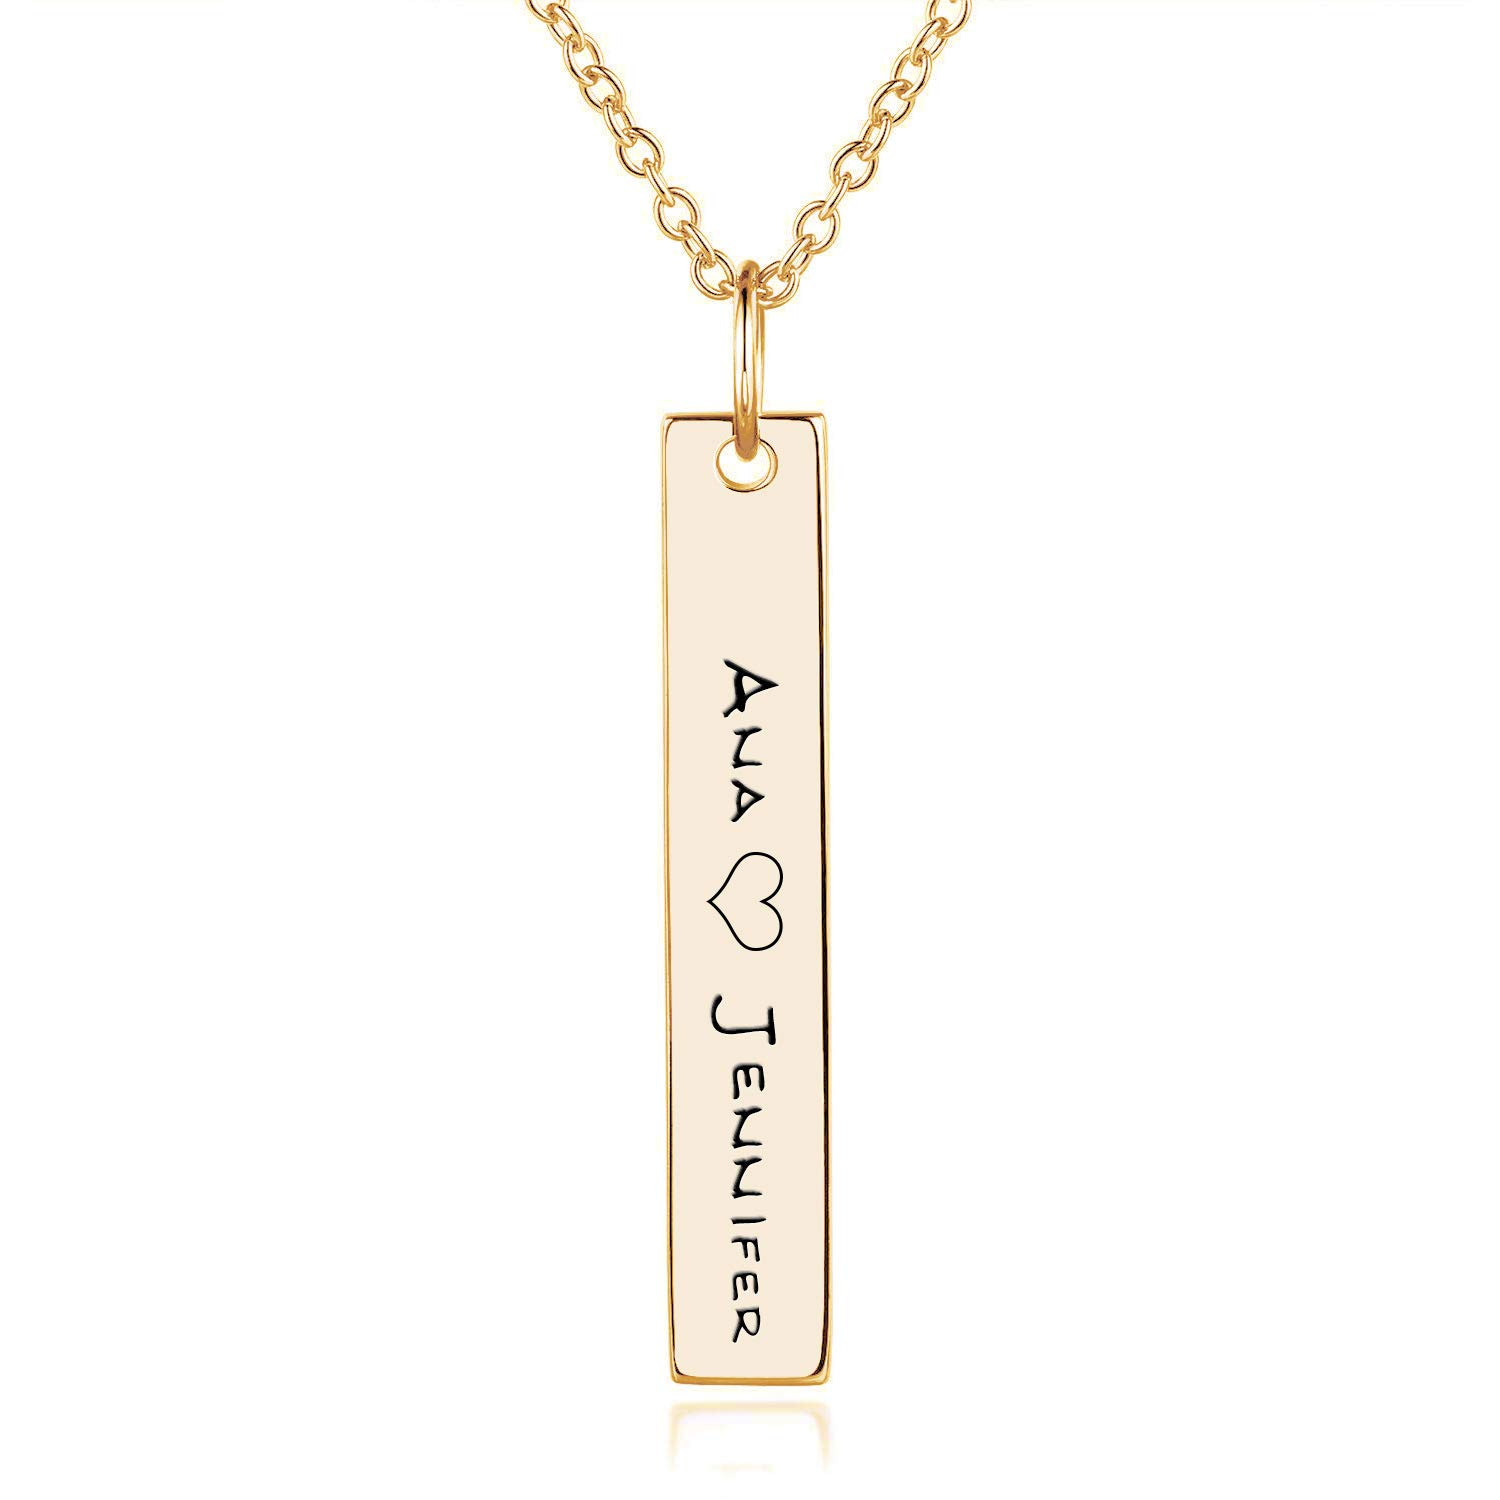 EverThanMore Vertical Bar Necklace Engraved Custom Name Necklace for Her Name Necklace Personalized